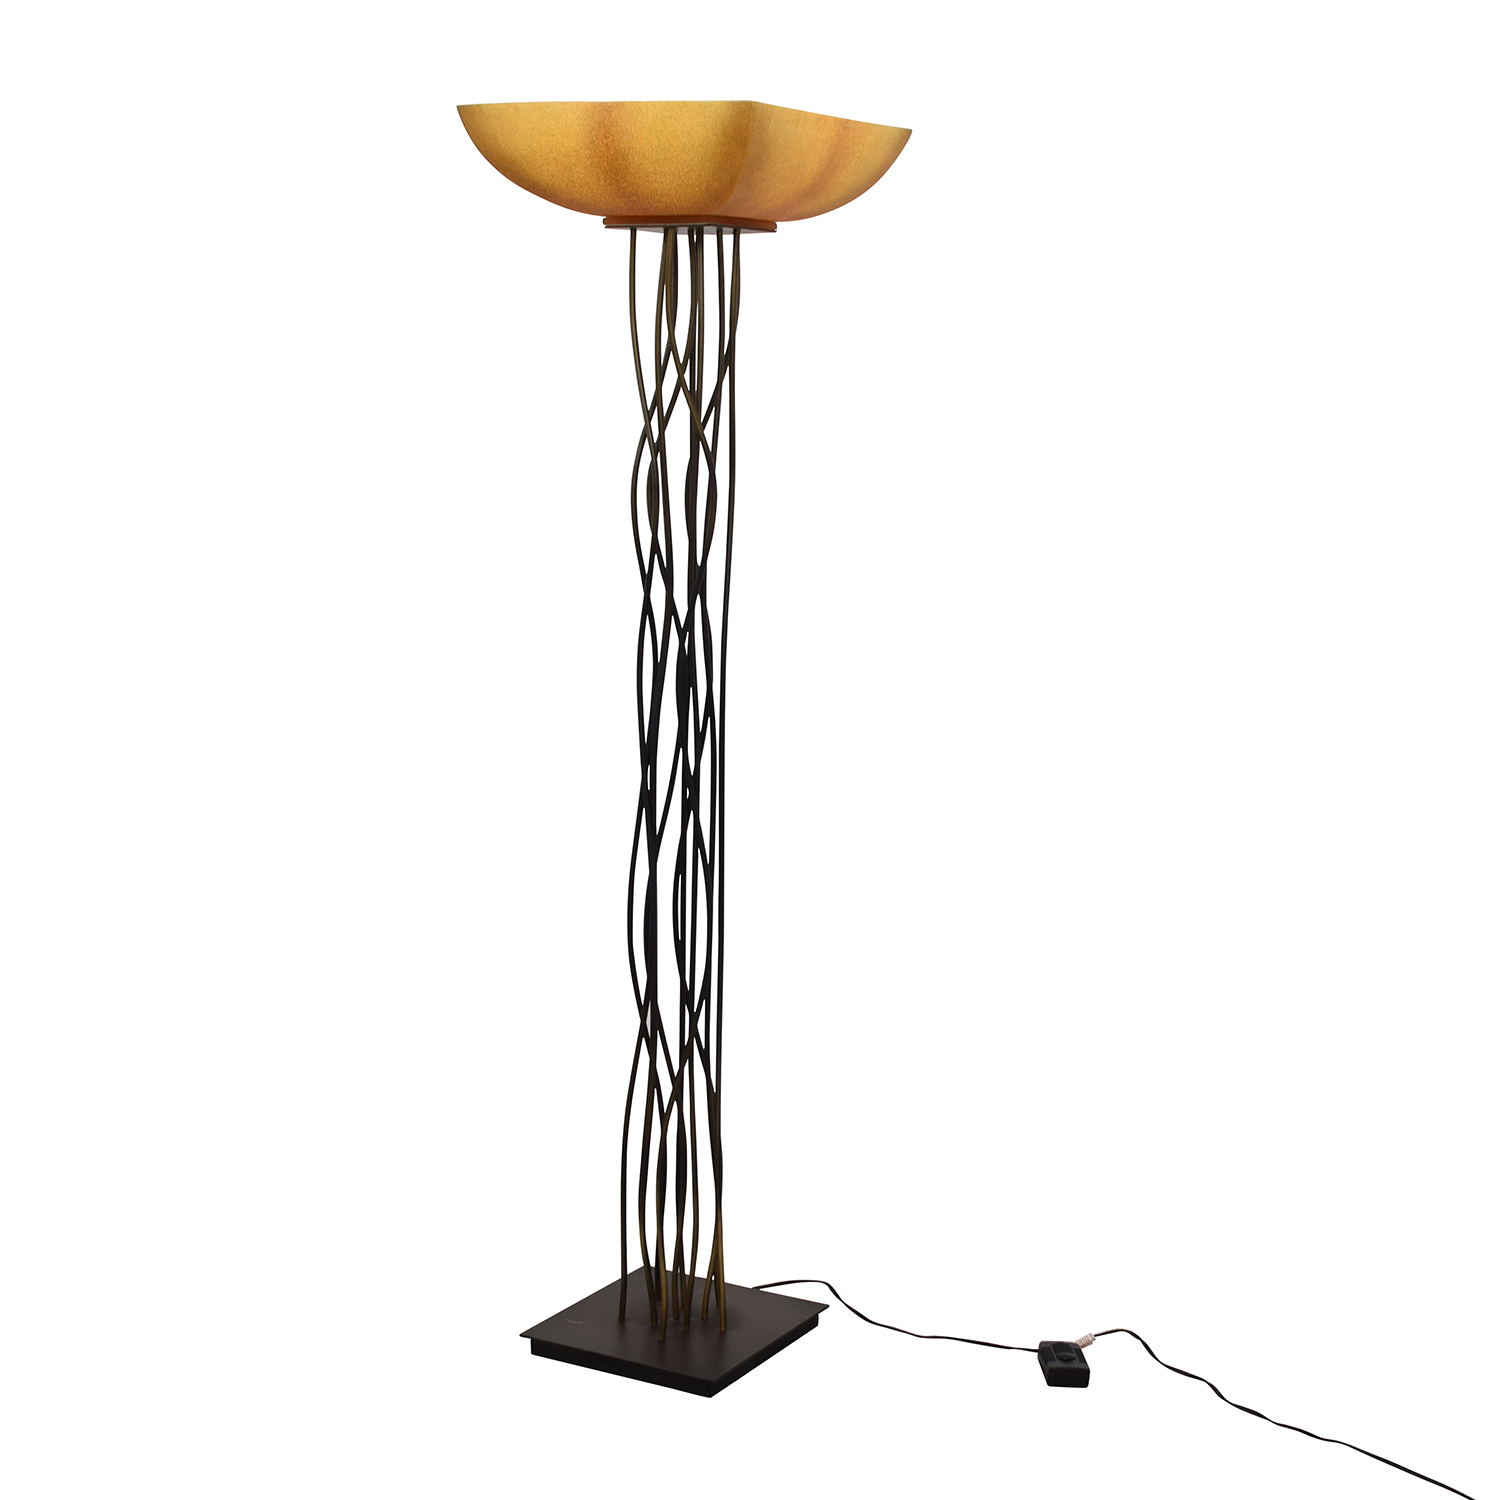 82 off metal twig floor lamp decor With metal twig floor lamp